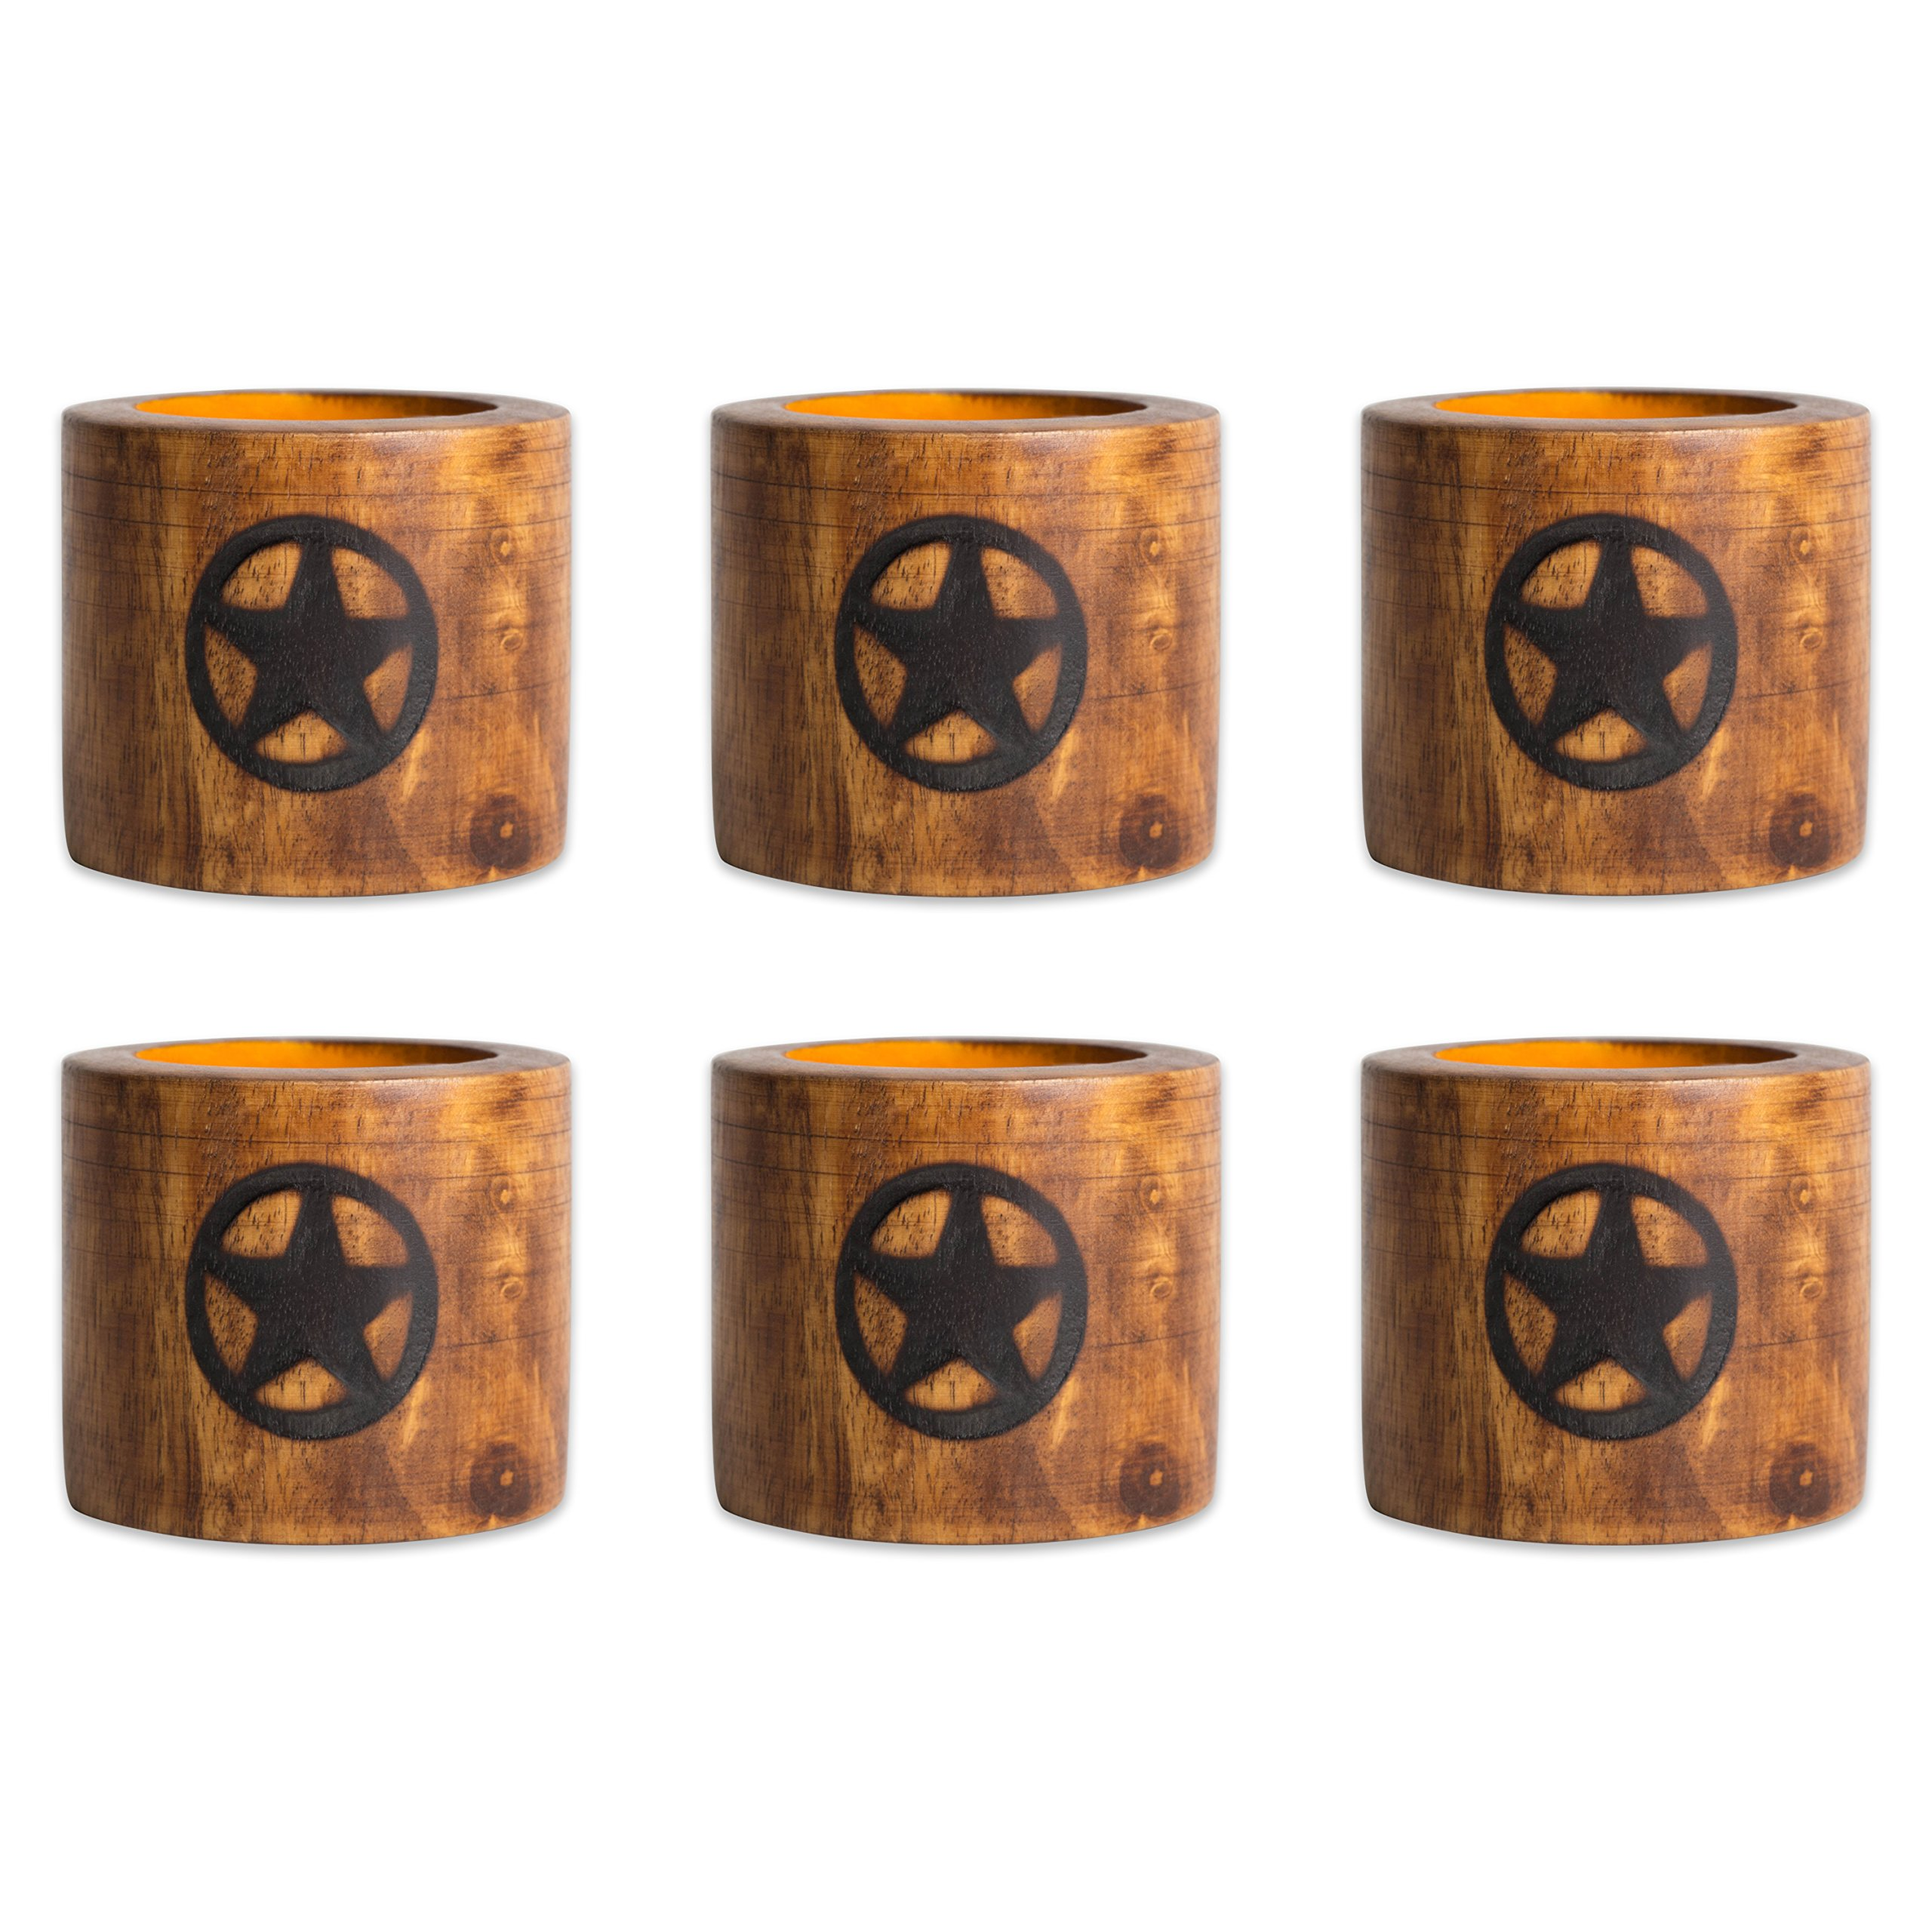 DII Napkin Rings for Family Dinners, Weddings, Outdoor Parties or Everyday Use, Set of 6, Lone Star